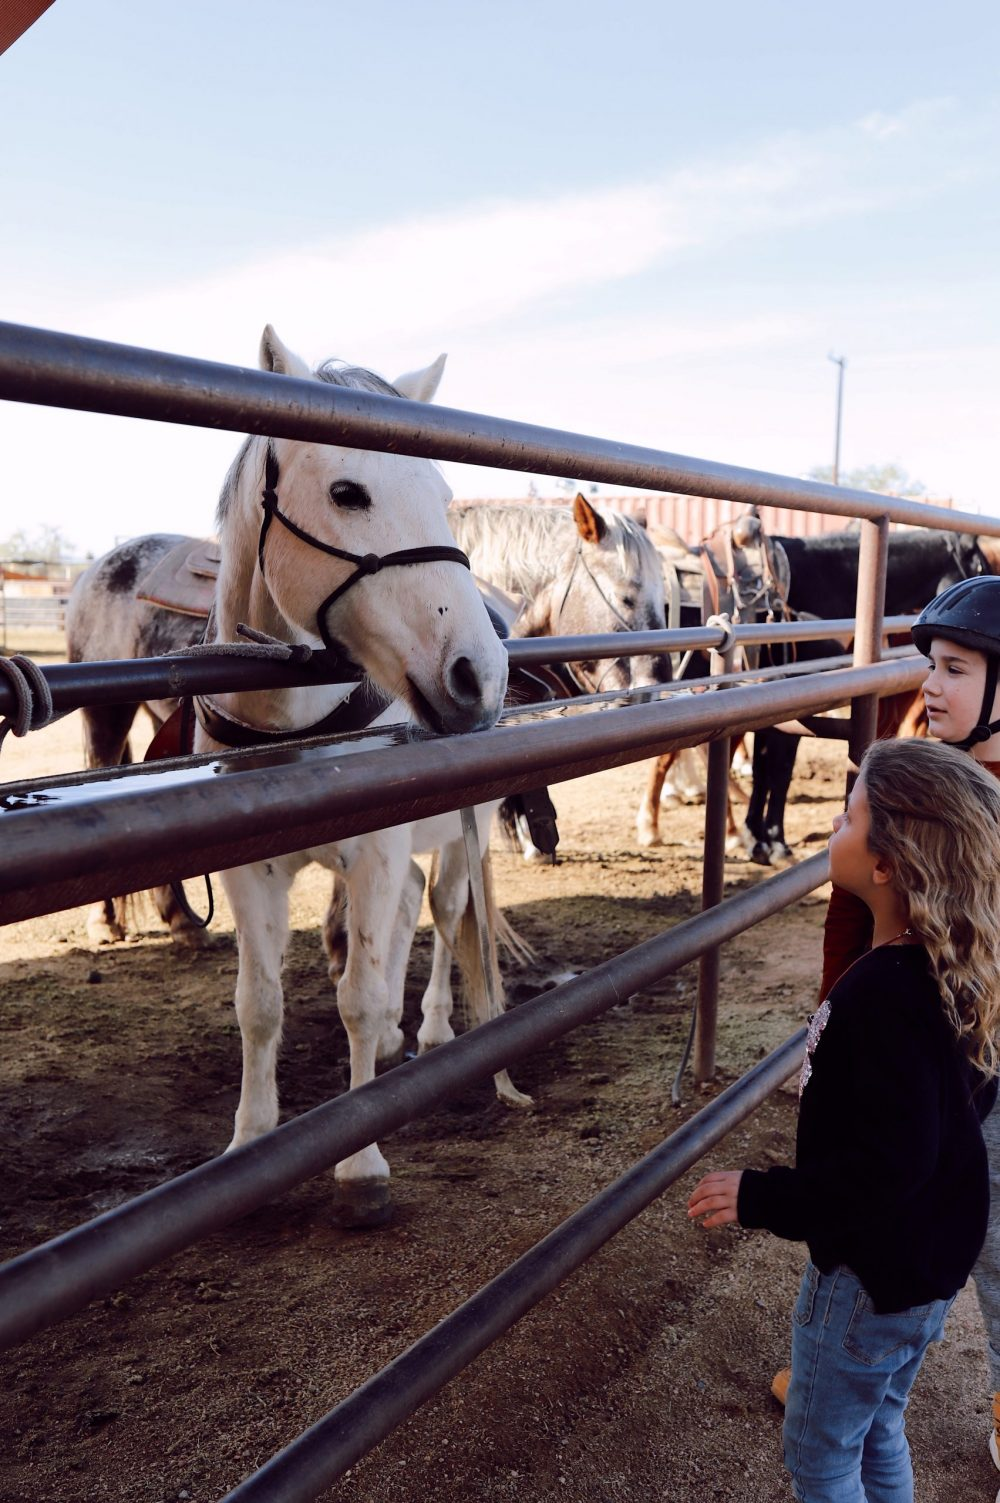 One of the Best Secret Winter Sun Destinations, Scottsdale Arizona. Horseback riding in the desert and family-friendly activities at MacDonald's Ranch. |Guide by popular Florida travel blog, Fresh Mommy Blog: image of two young kids looking at horses.